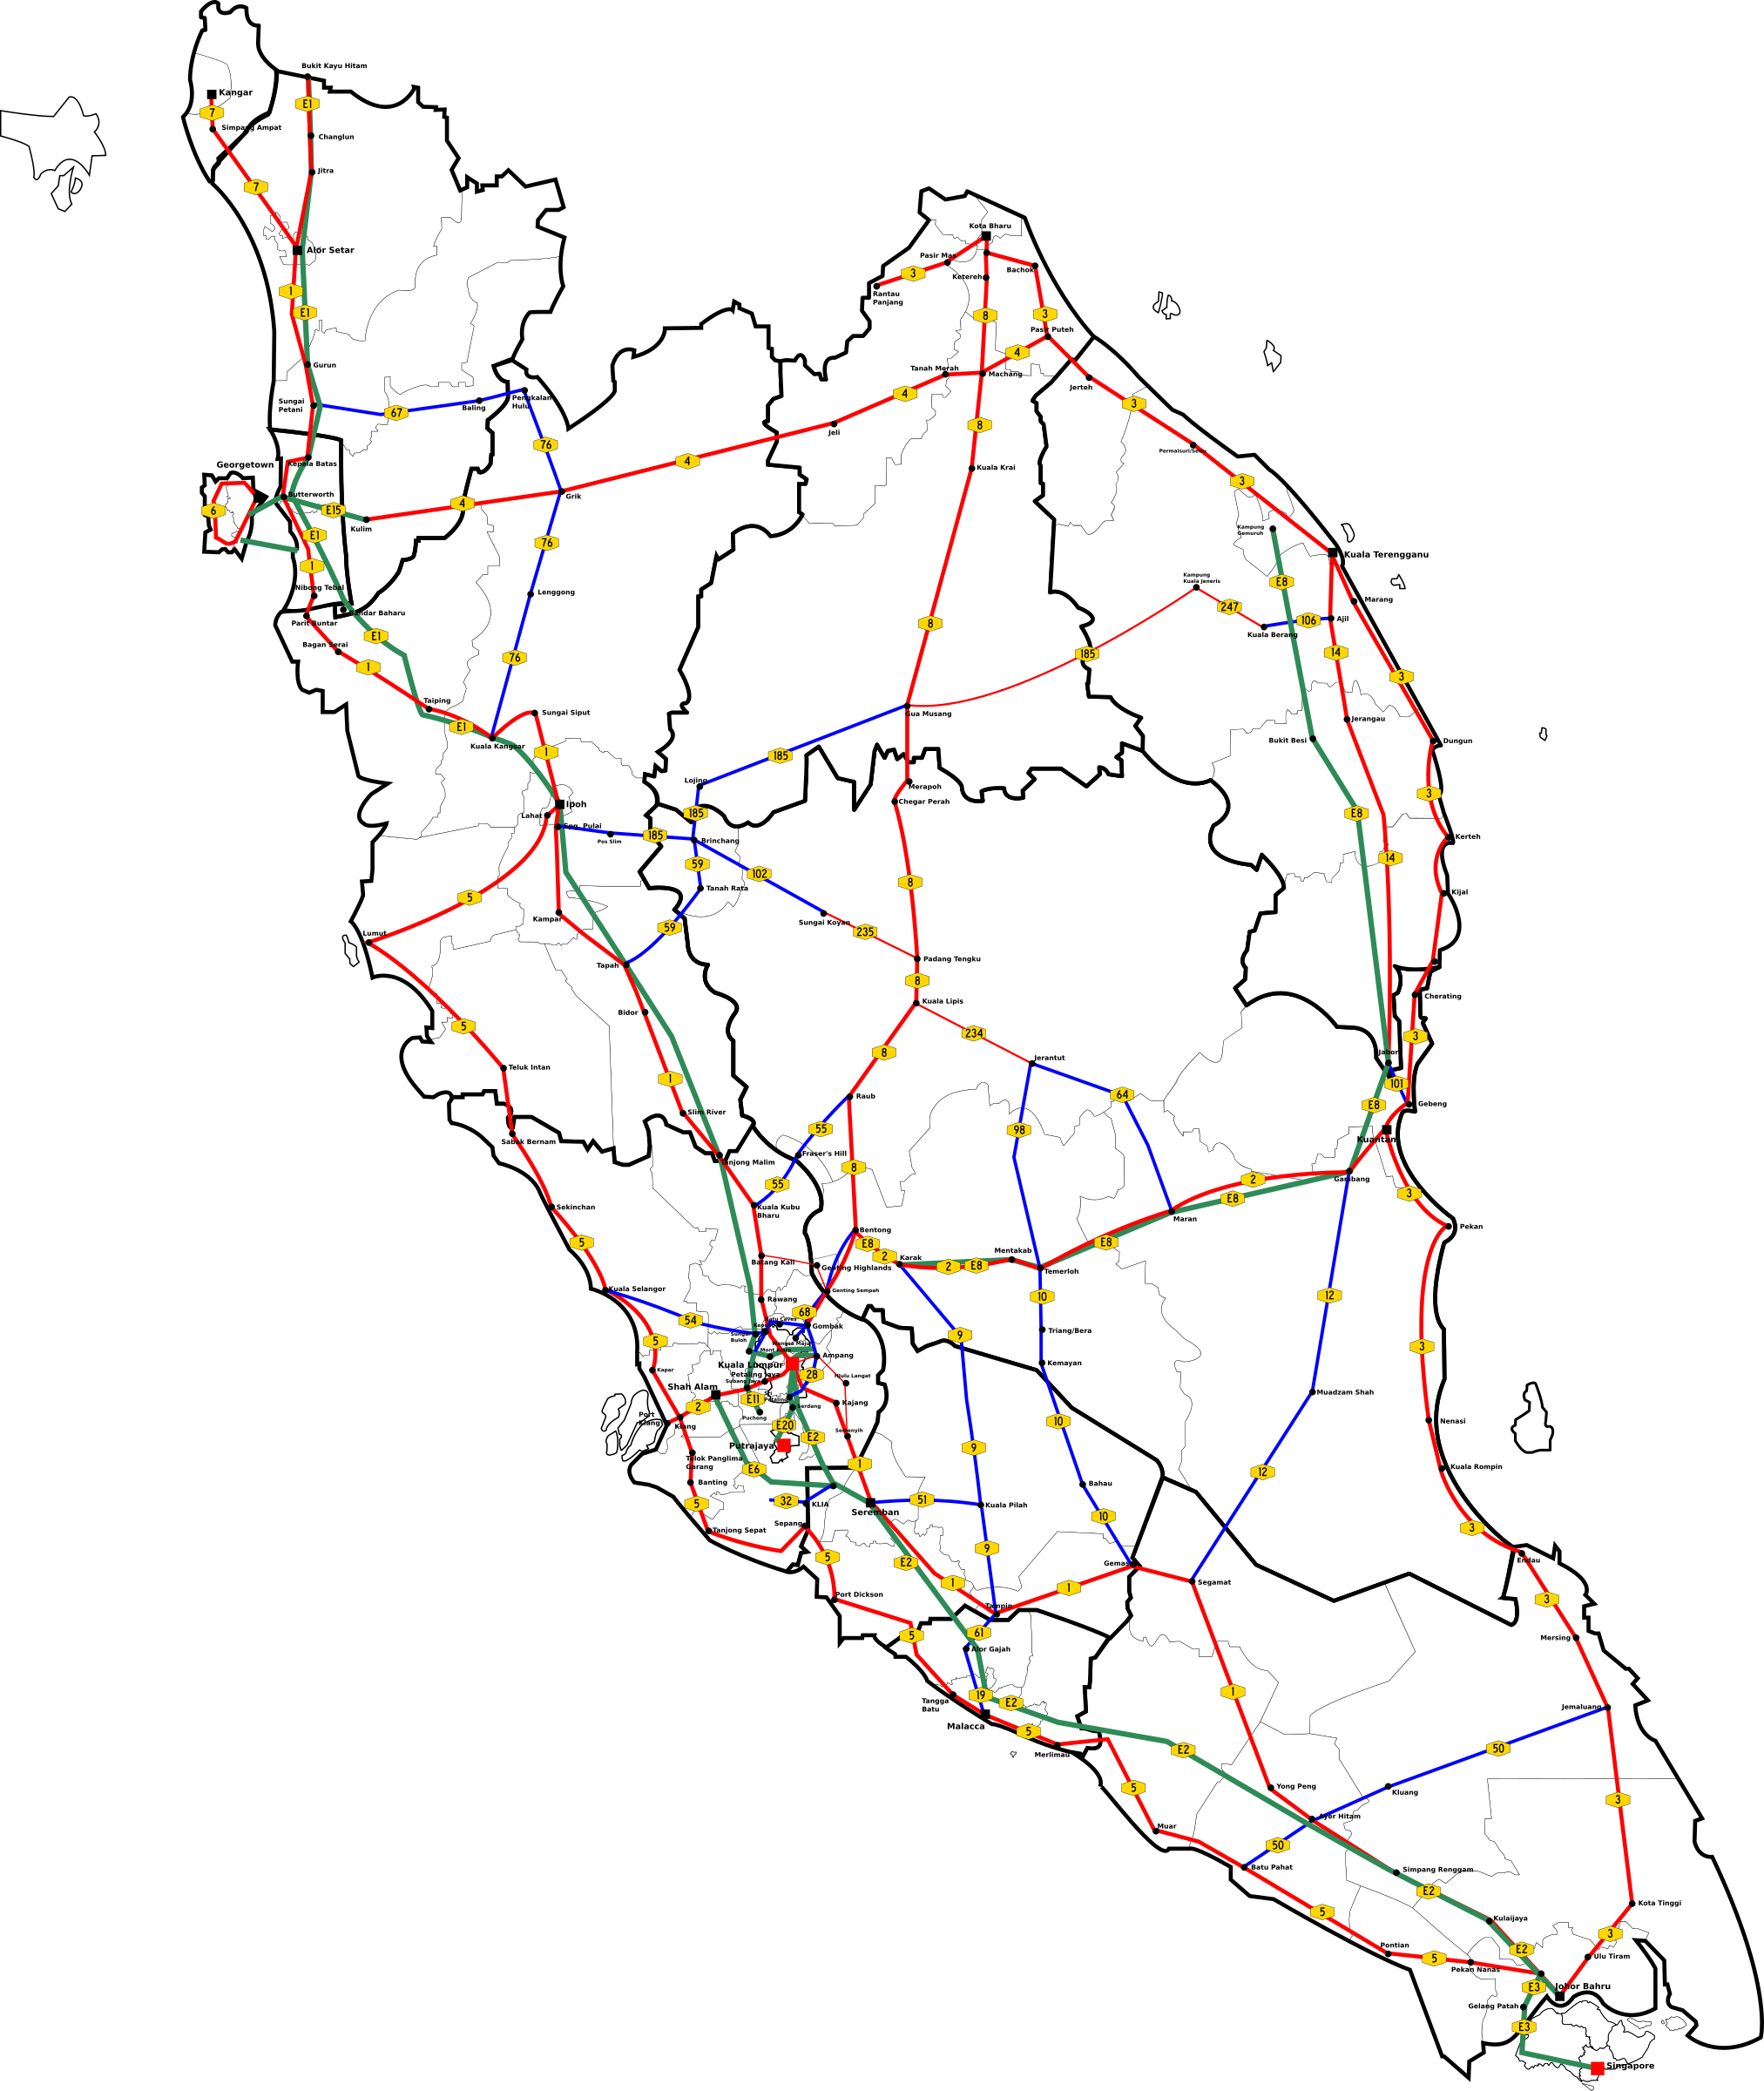 Peninsular Malaysia Major Routes Map by derkommander0916